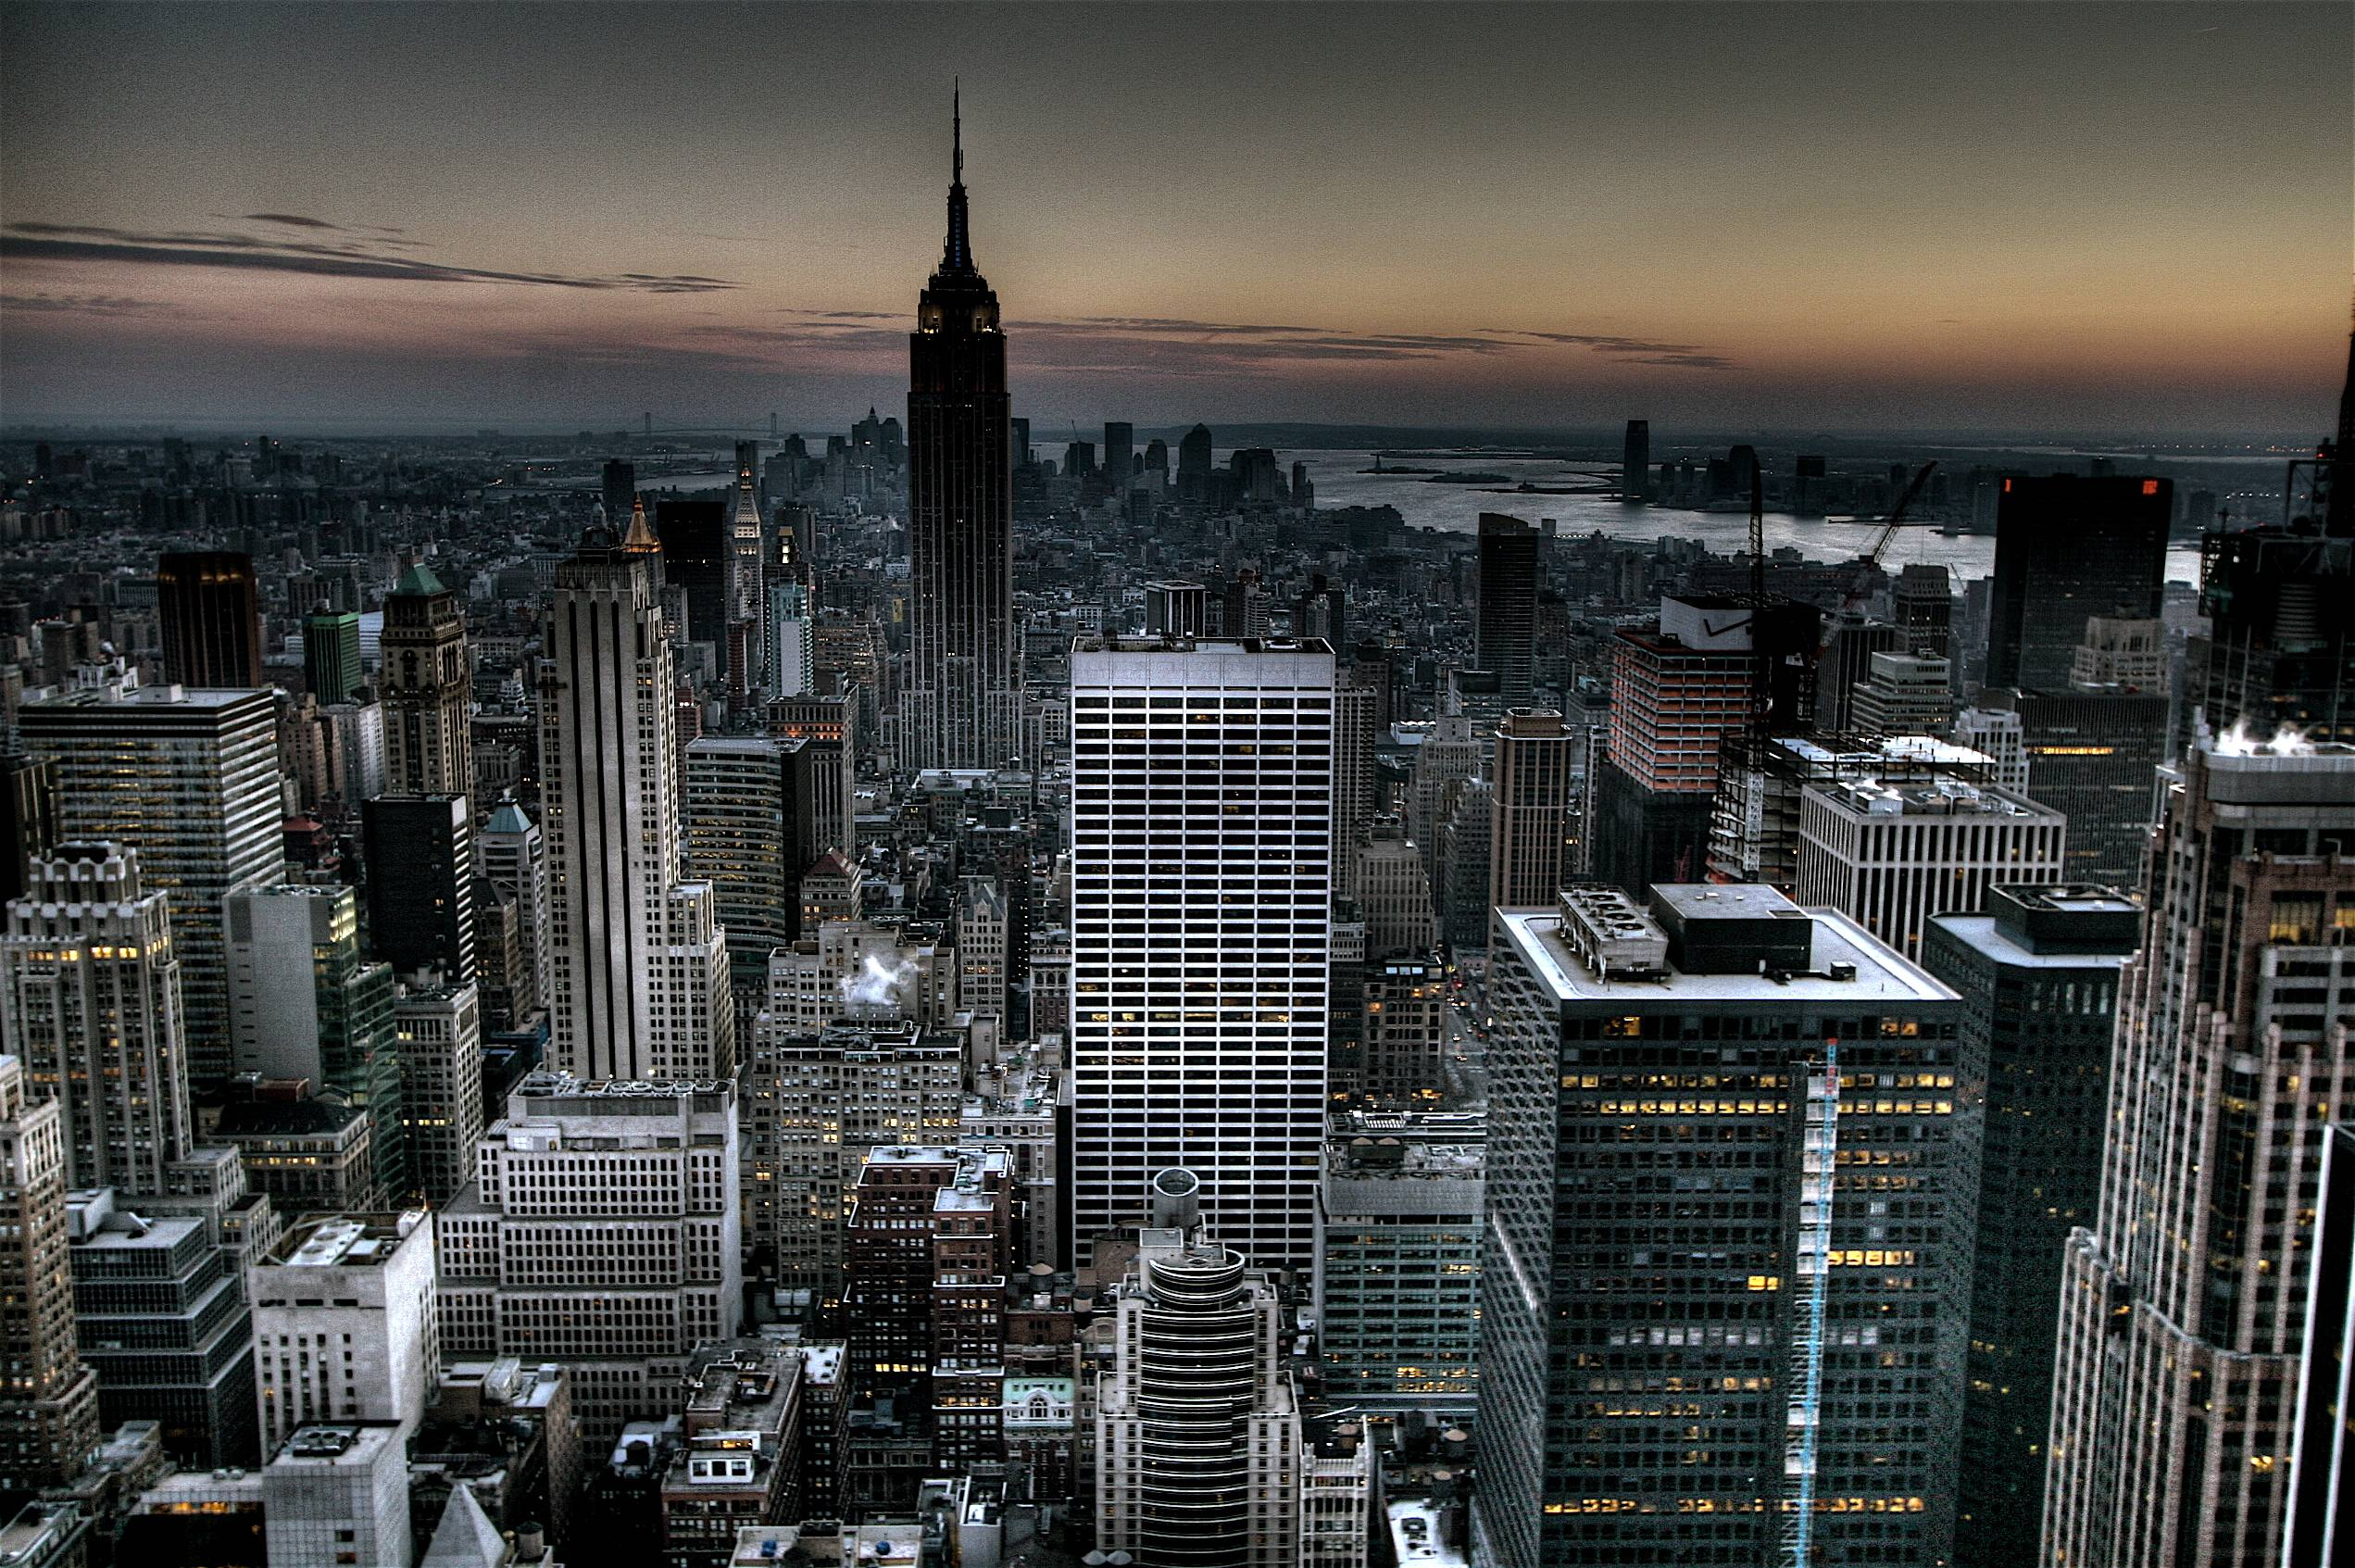 New York City Desktop Backgrounds - Wallpaper Cave